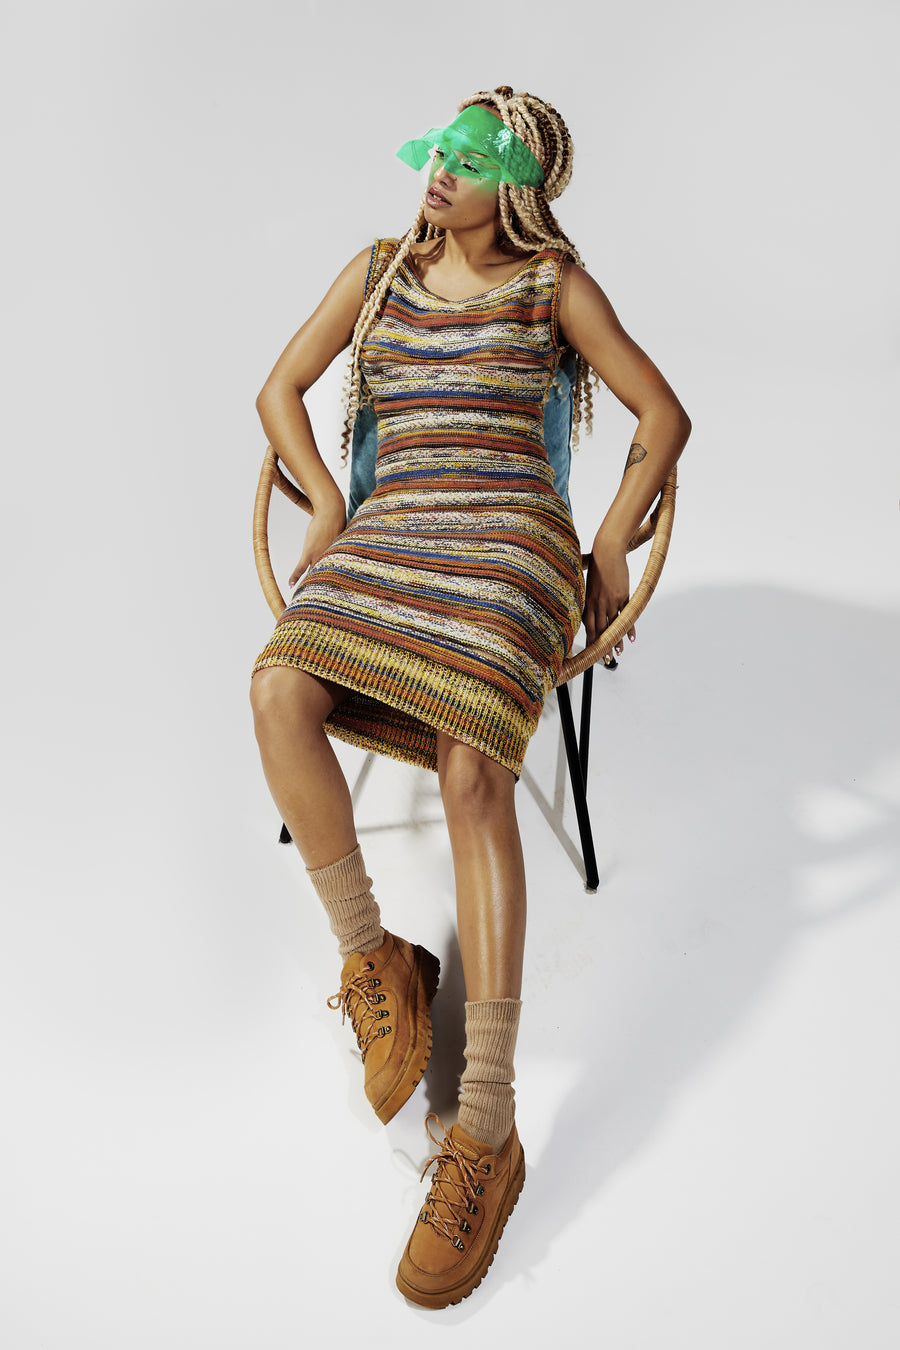 Long curly hair model DJ Karaba, wearing a green see-through visor, with a mid-length multicolor striped knitted dress, long beige knitted socks and worker boots